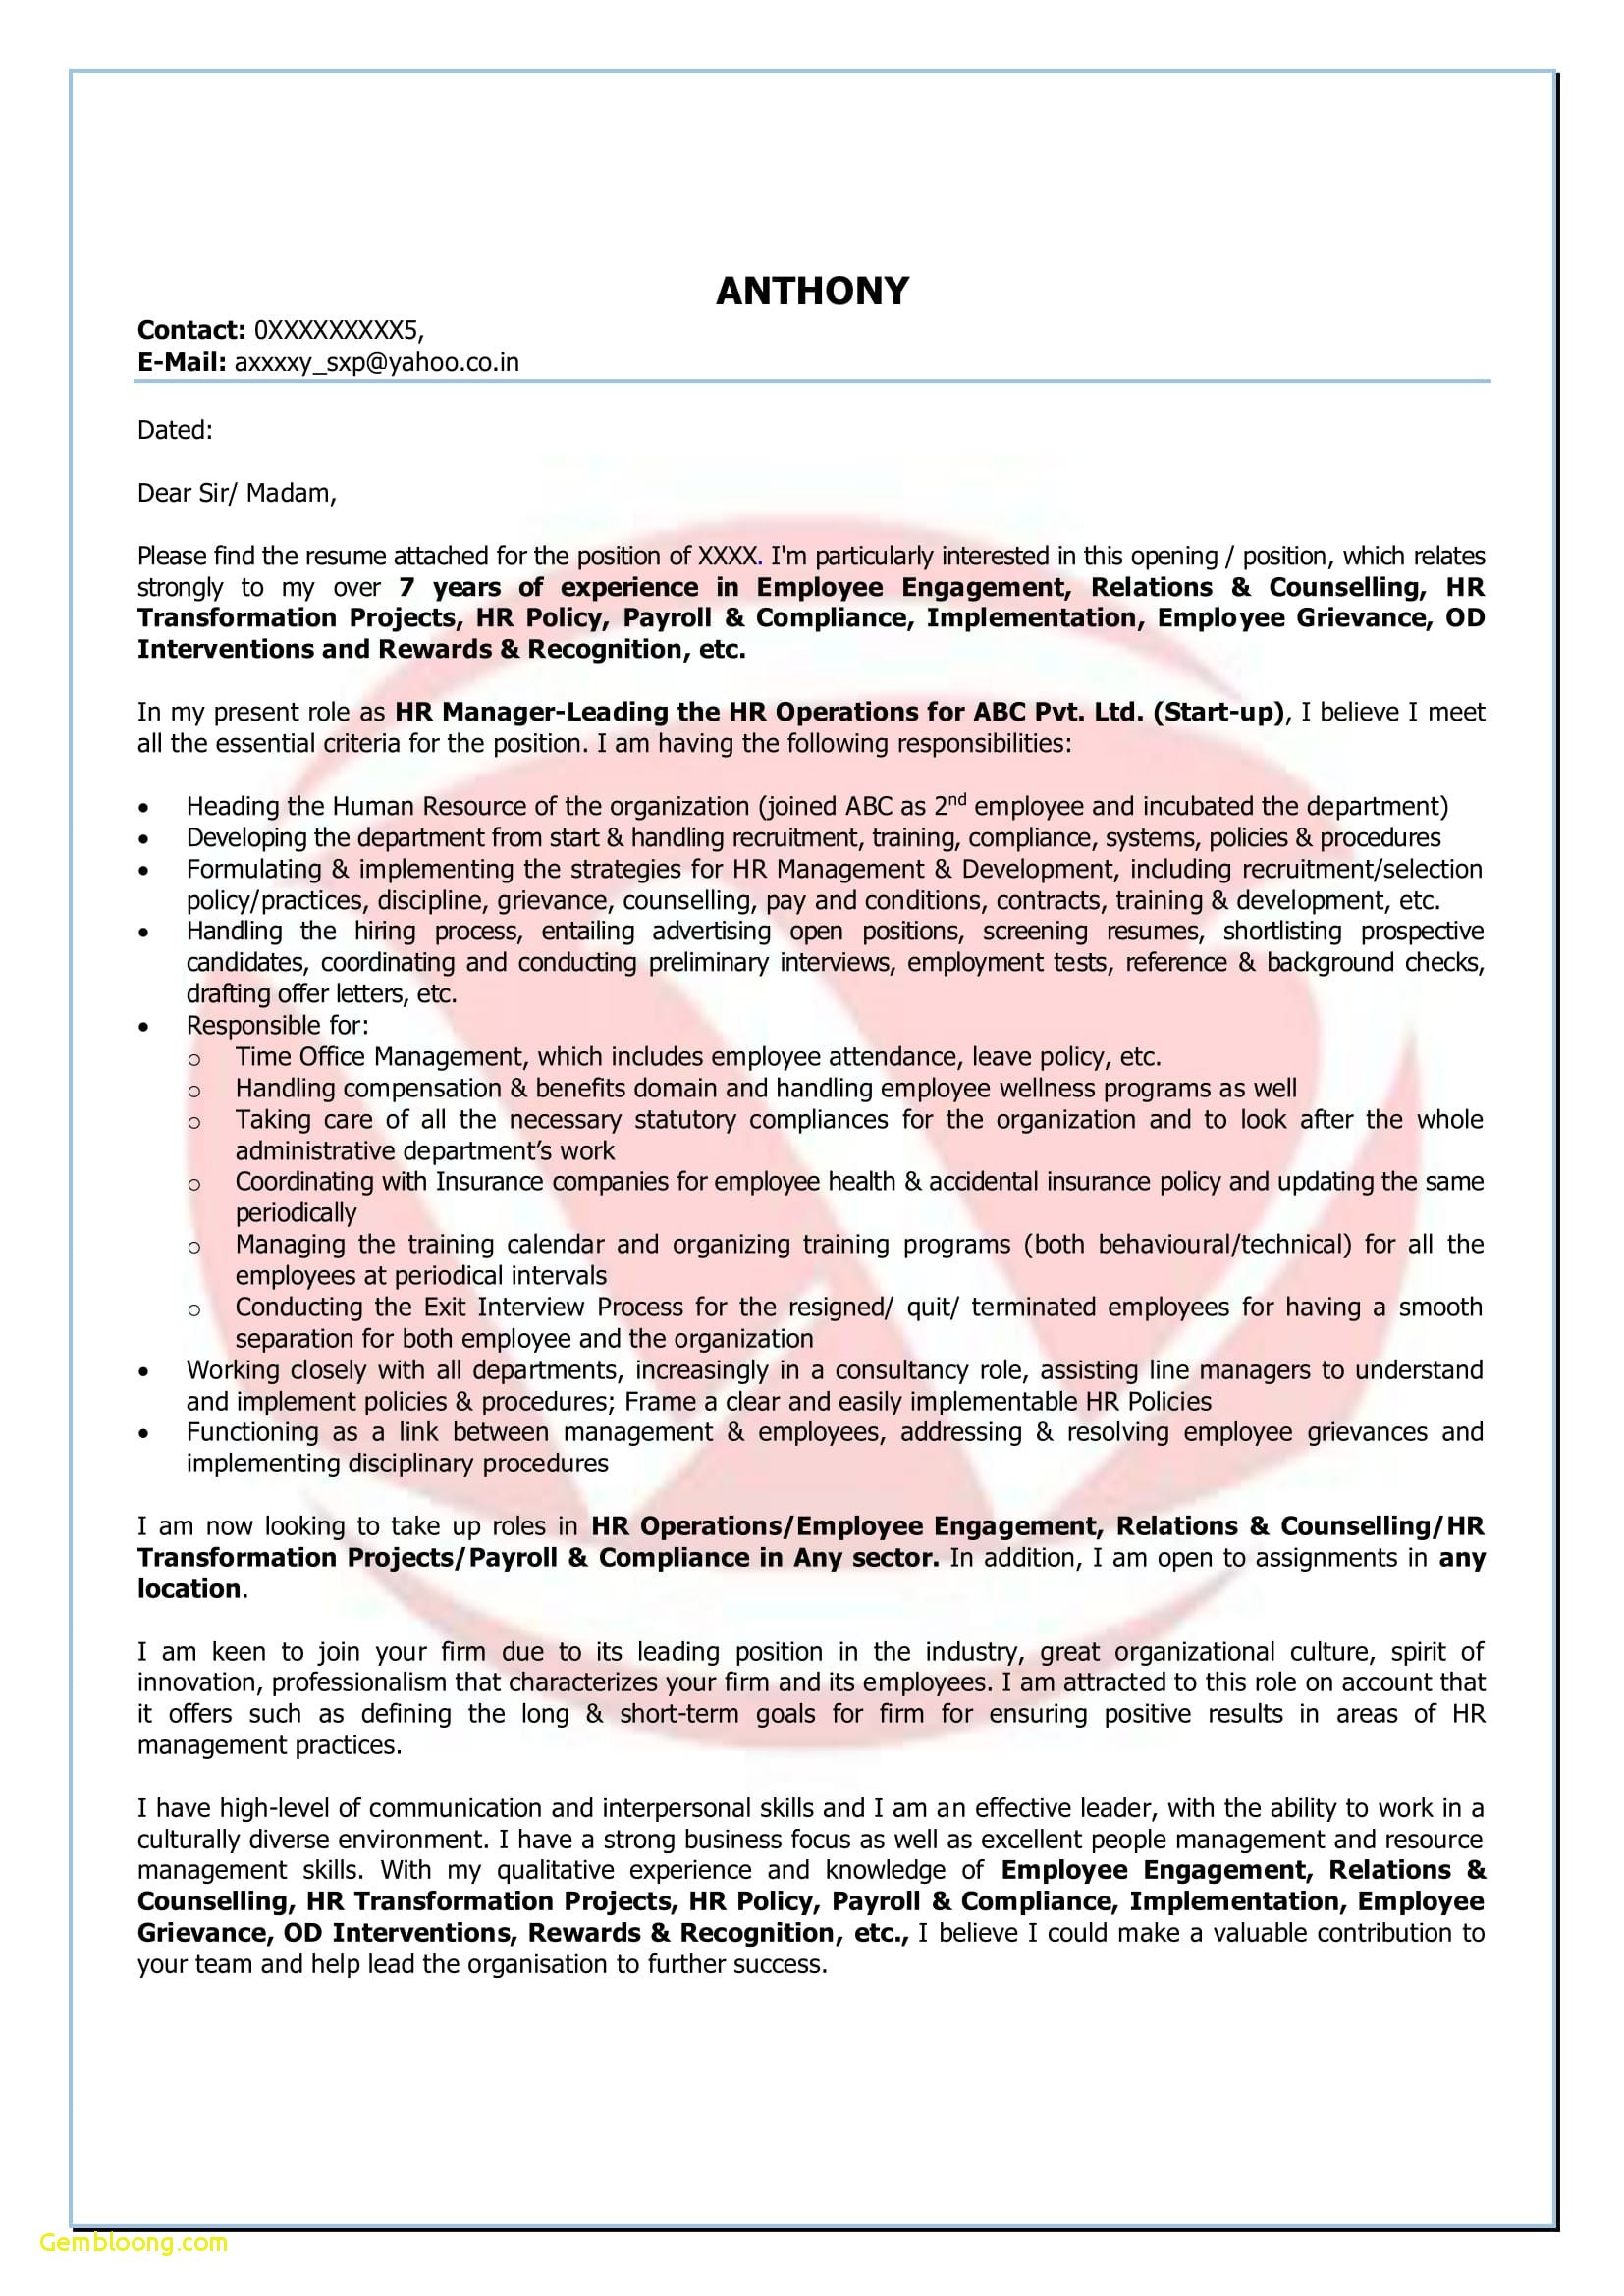 Letter Of Recommendation Template for Employee - Letter Re Mendation Employee Template Save References for